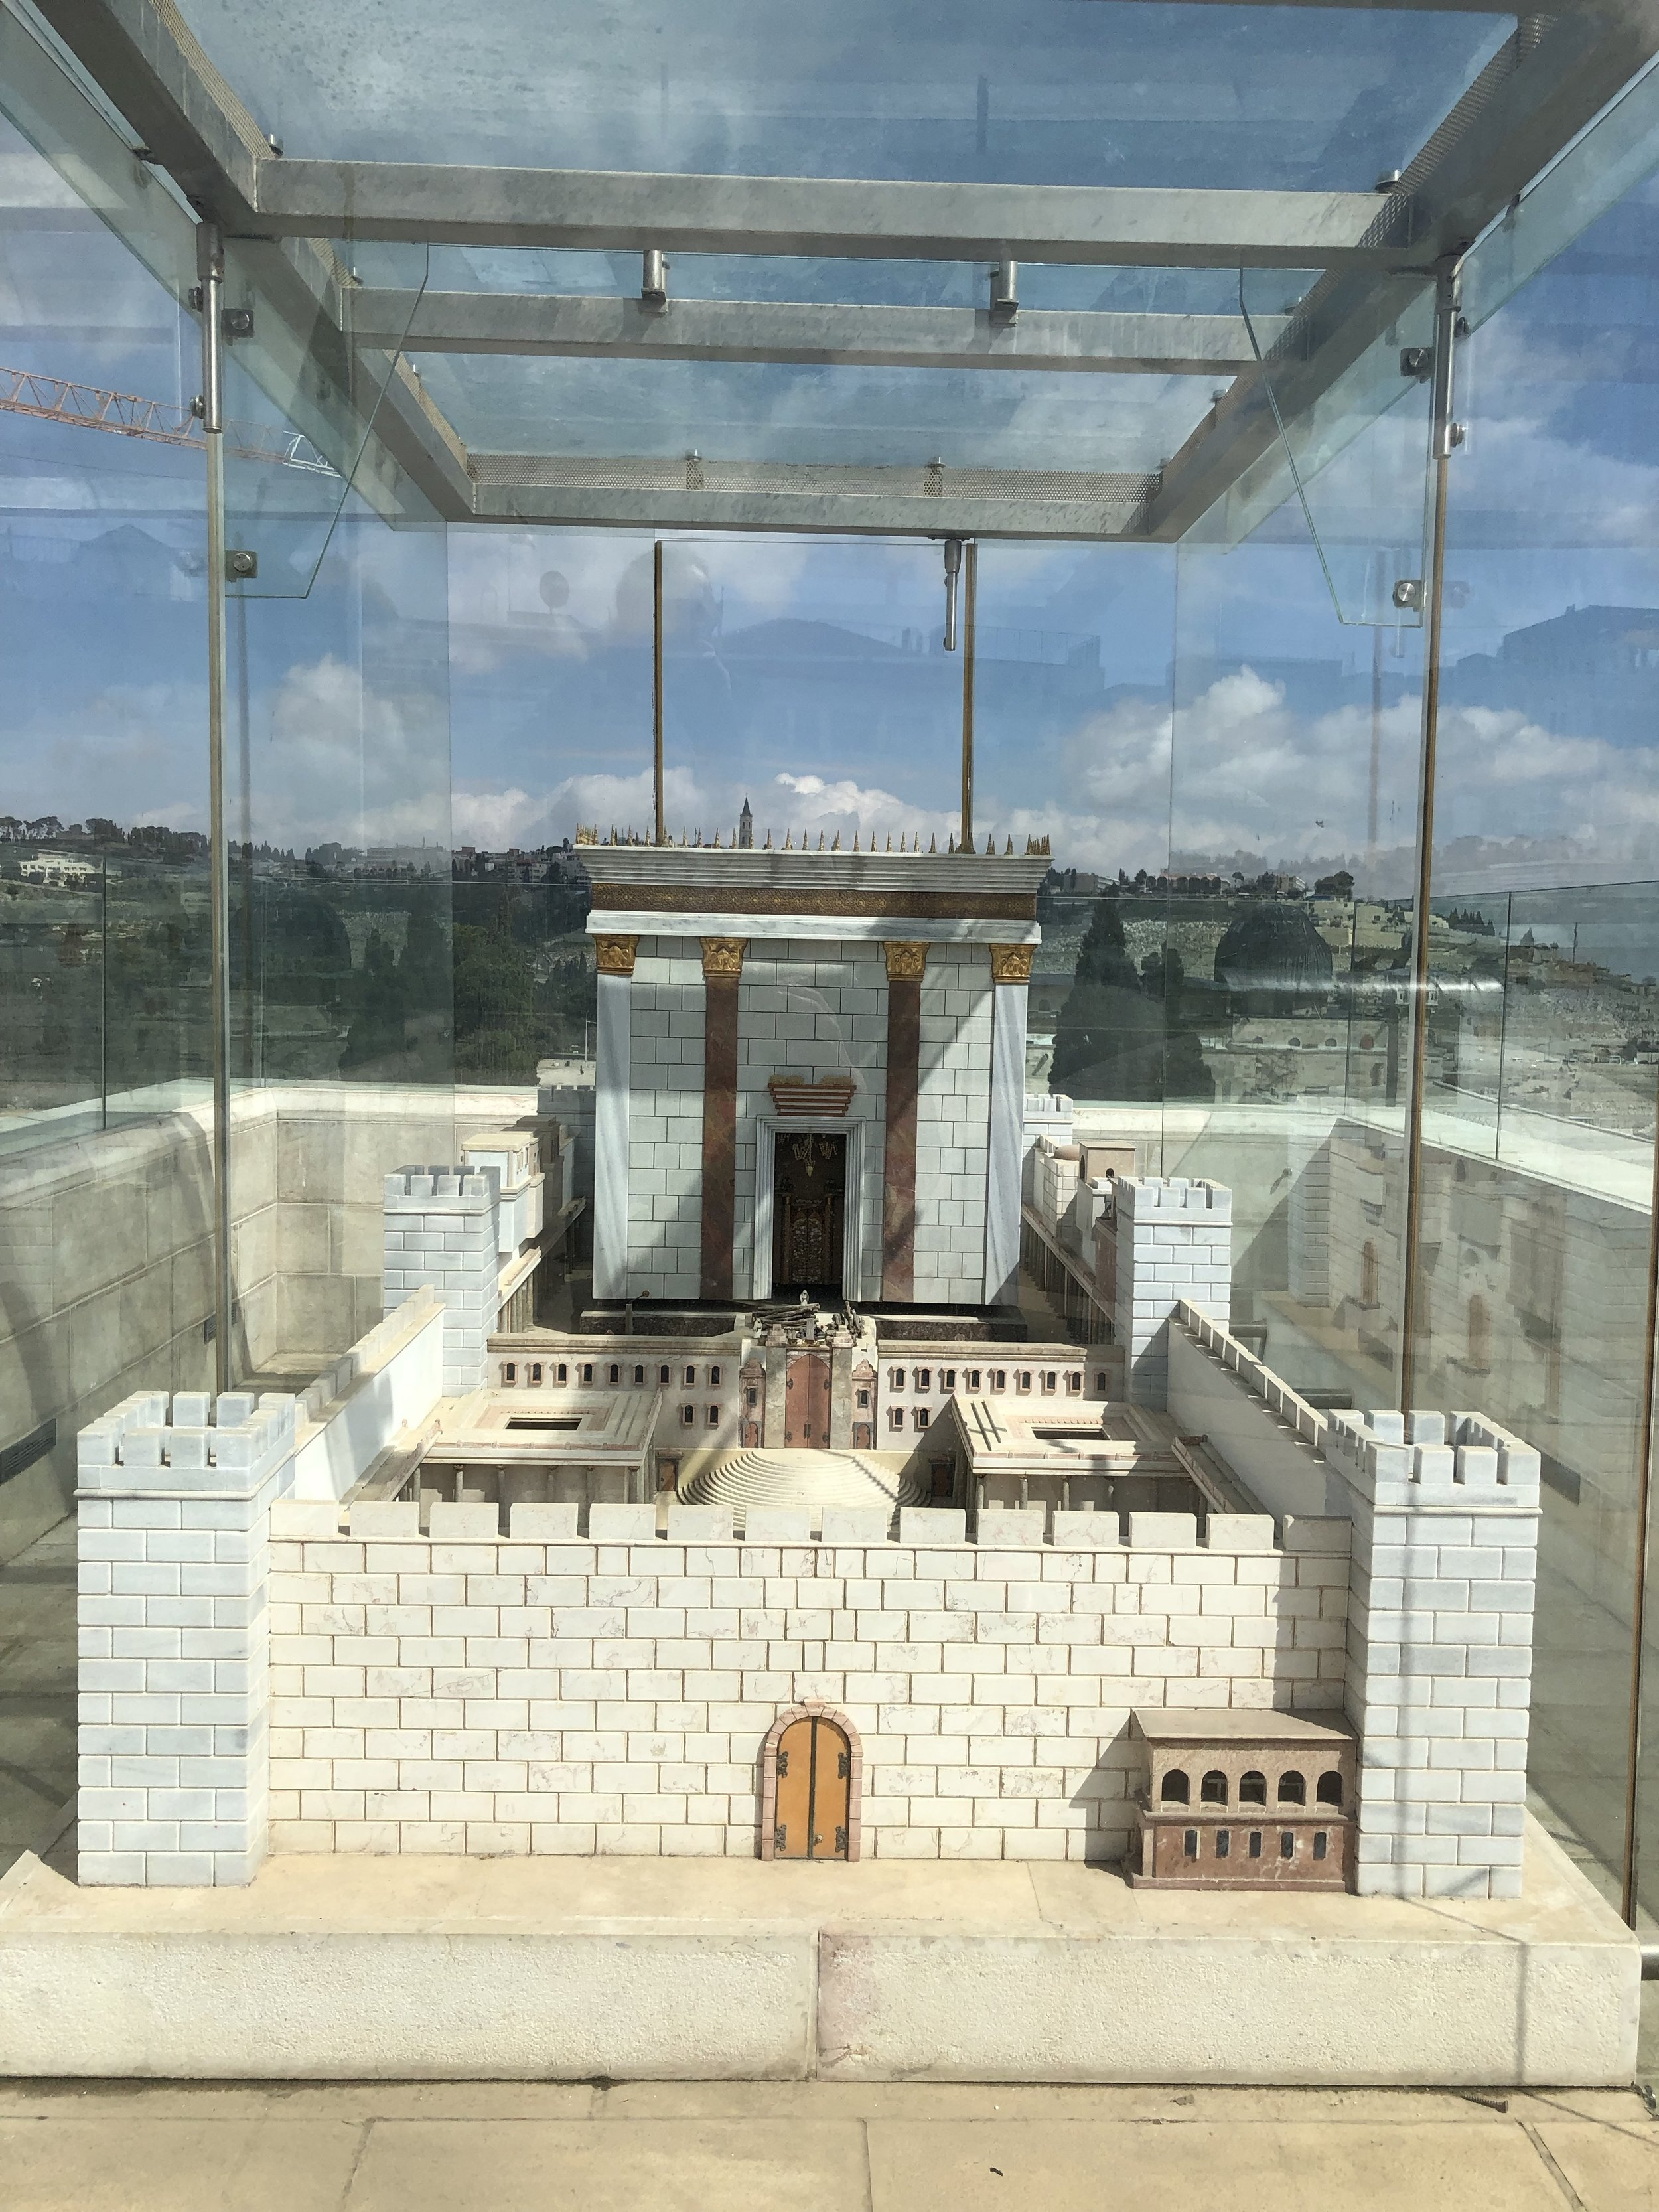 The Second Temple, scaled down